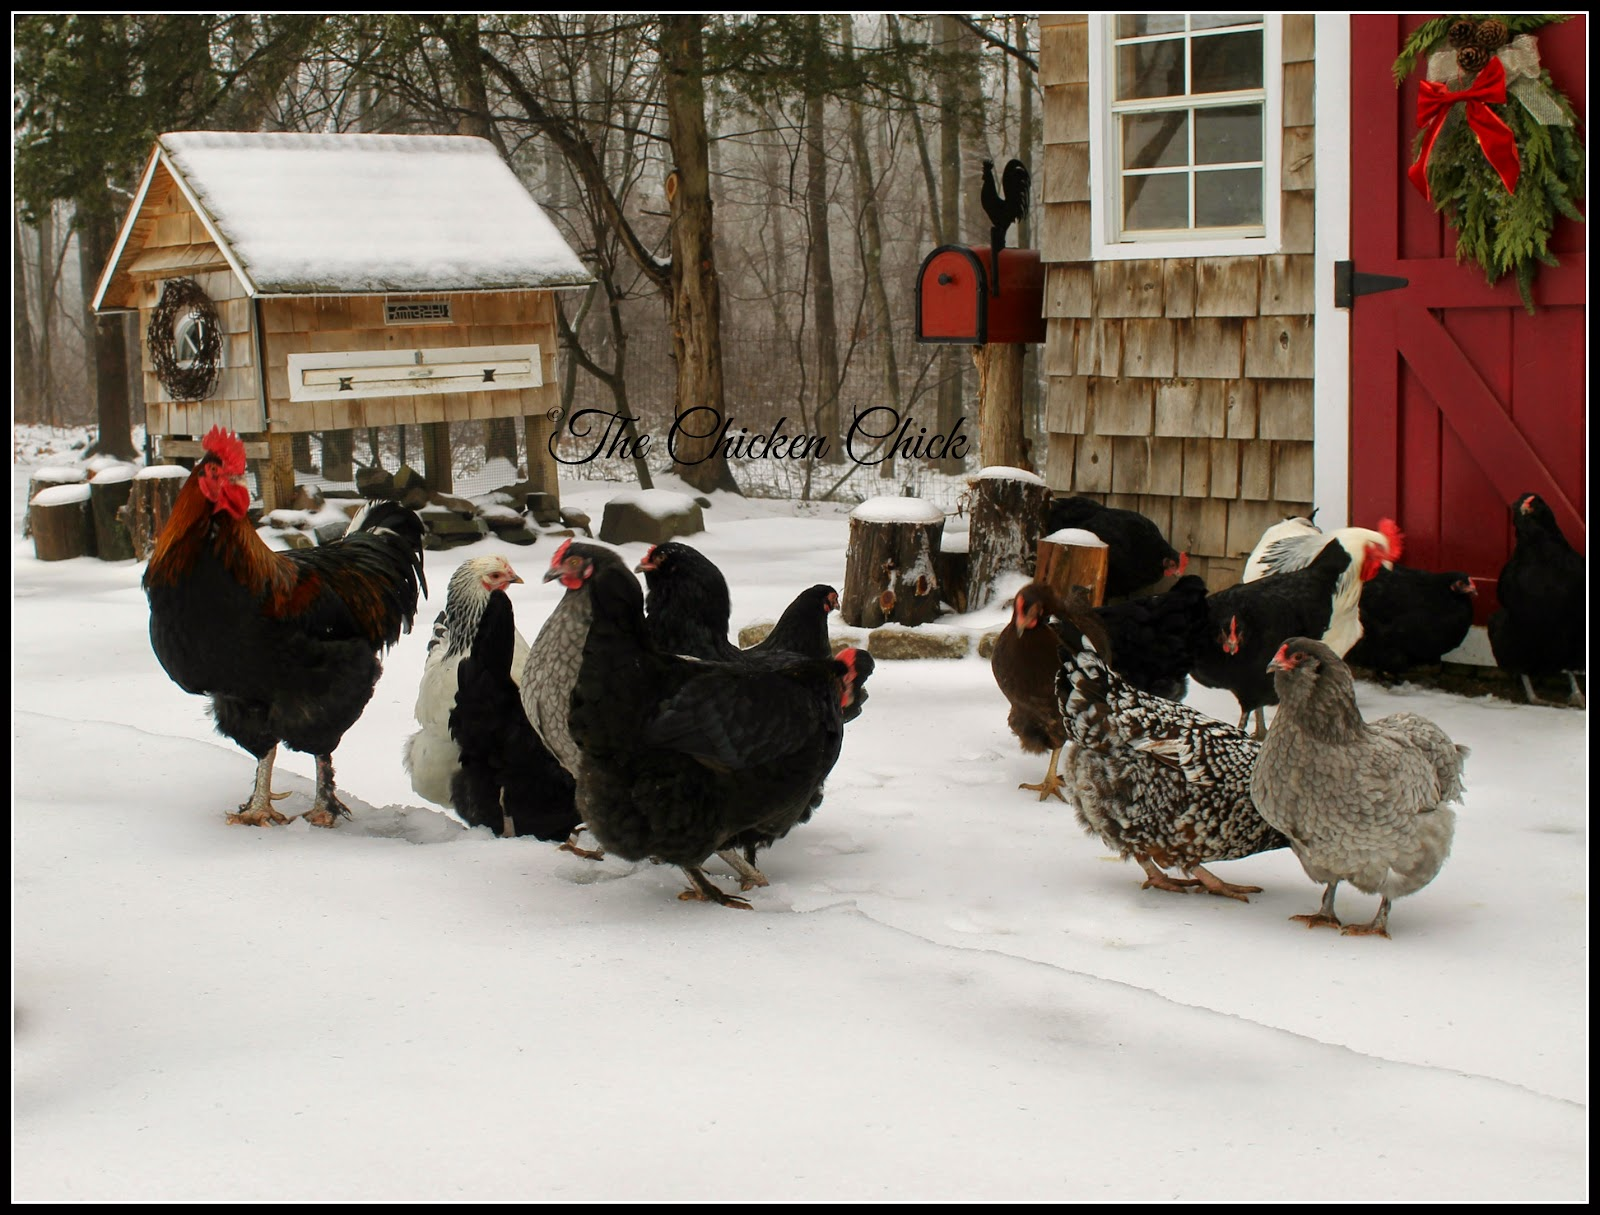 Backyard chickens in the snow.